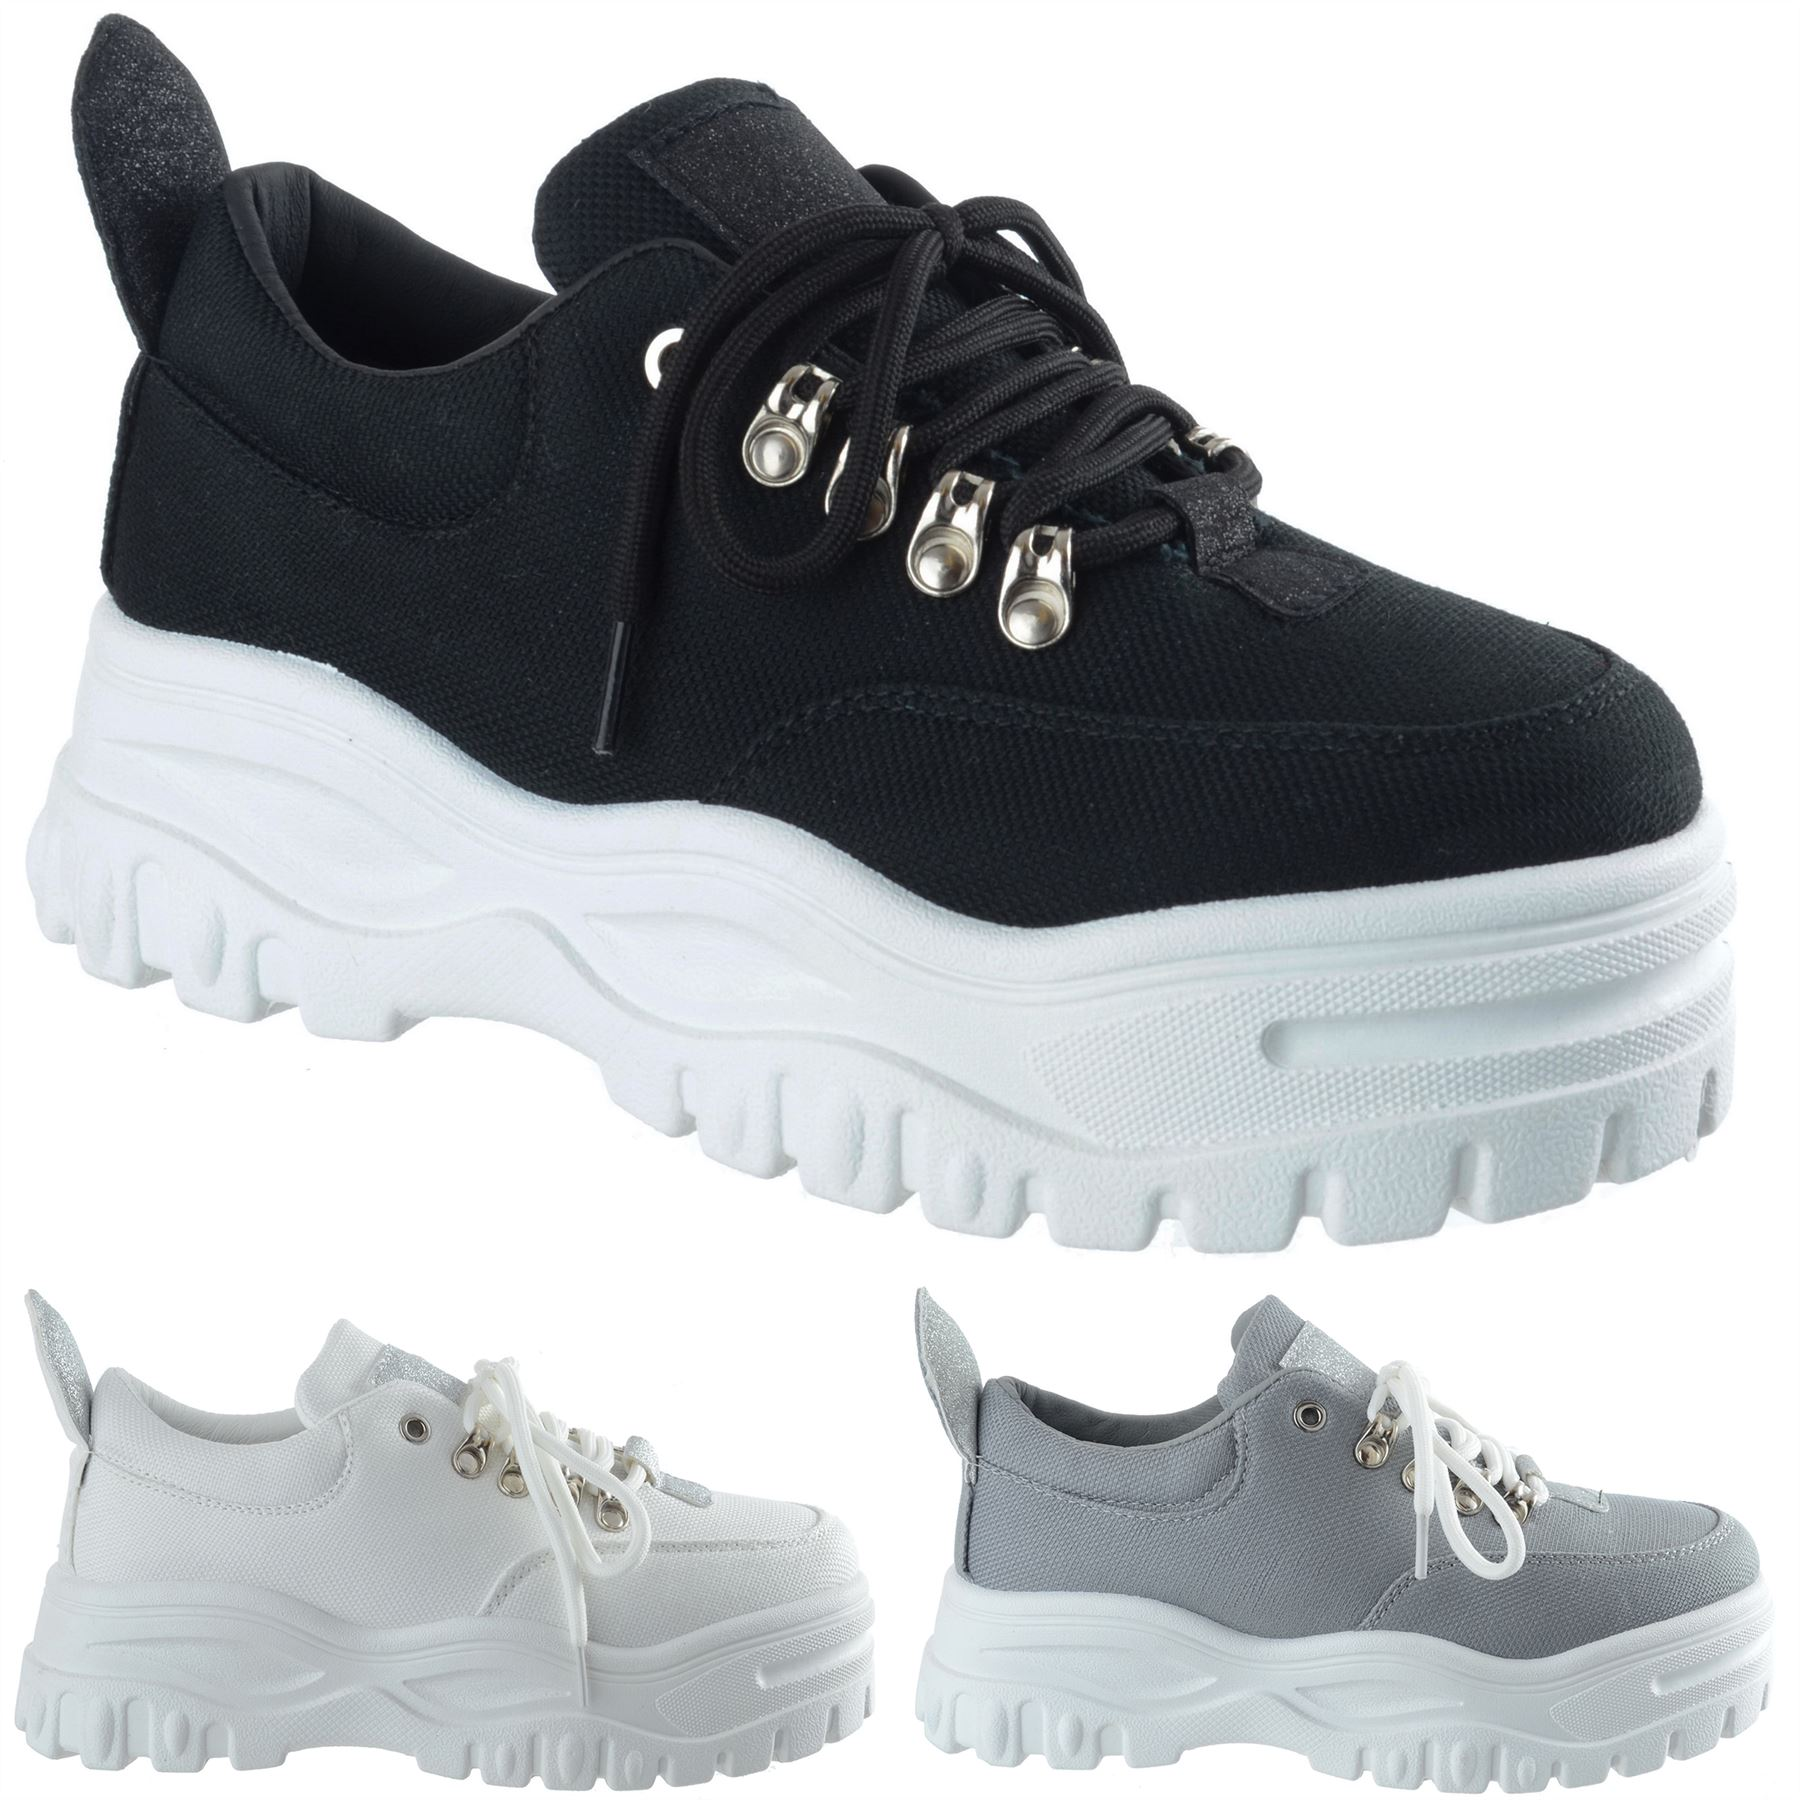 55d74f9b8aa Details about WOMENS LADIES PLATFORM TRAINERS LACE UP SNEAKERS PLIMSOLLS  COMFY FASHION SHOES